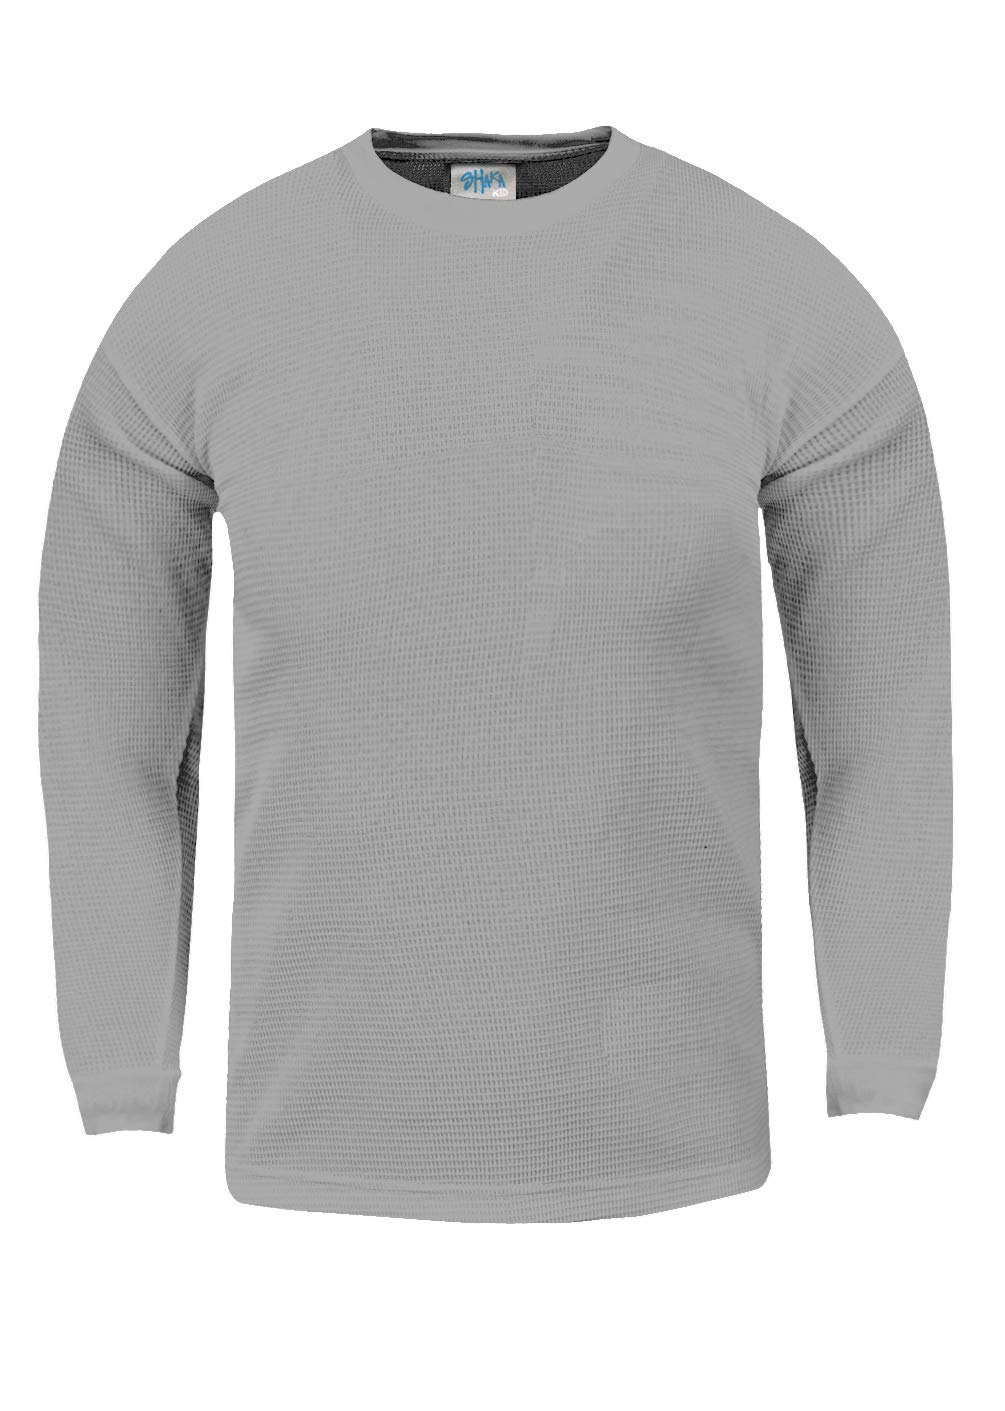 Shaka Wear KTC05_XXS Thermal Long Sleeve Crewneck Waffle Shirt H.Grey XXS by Shaka Wear